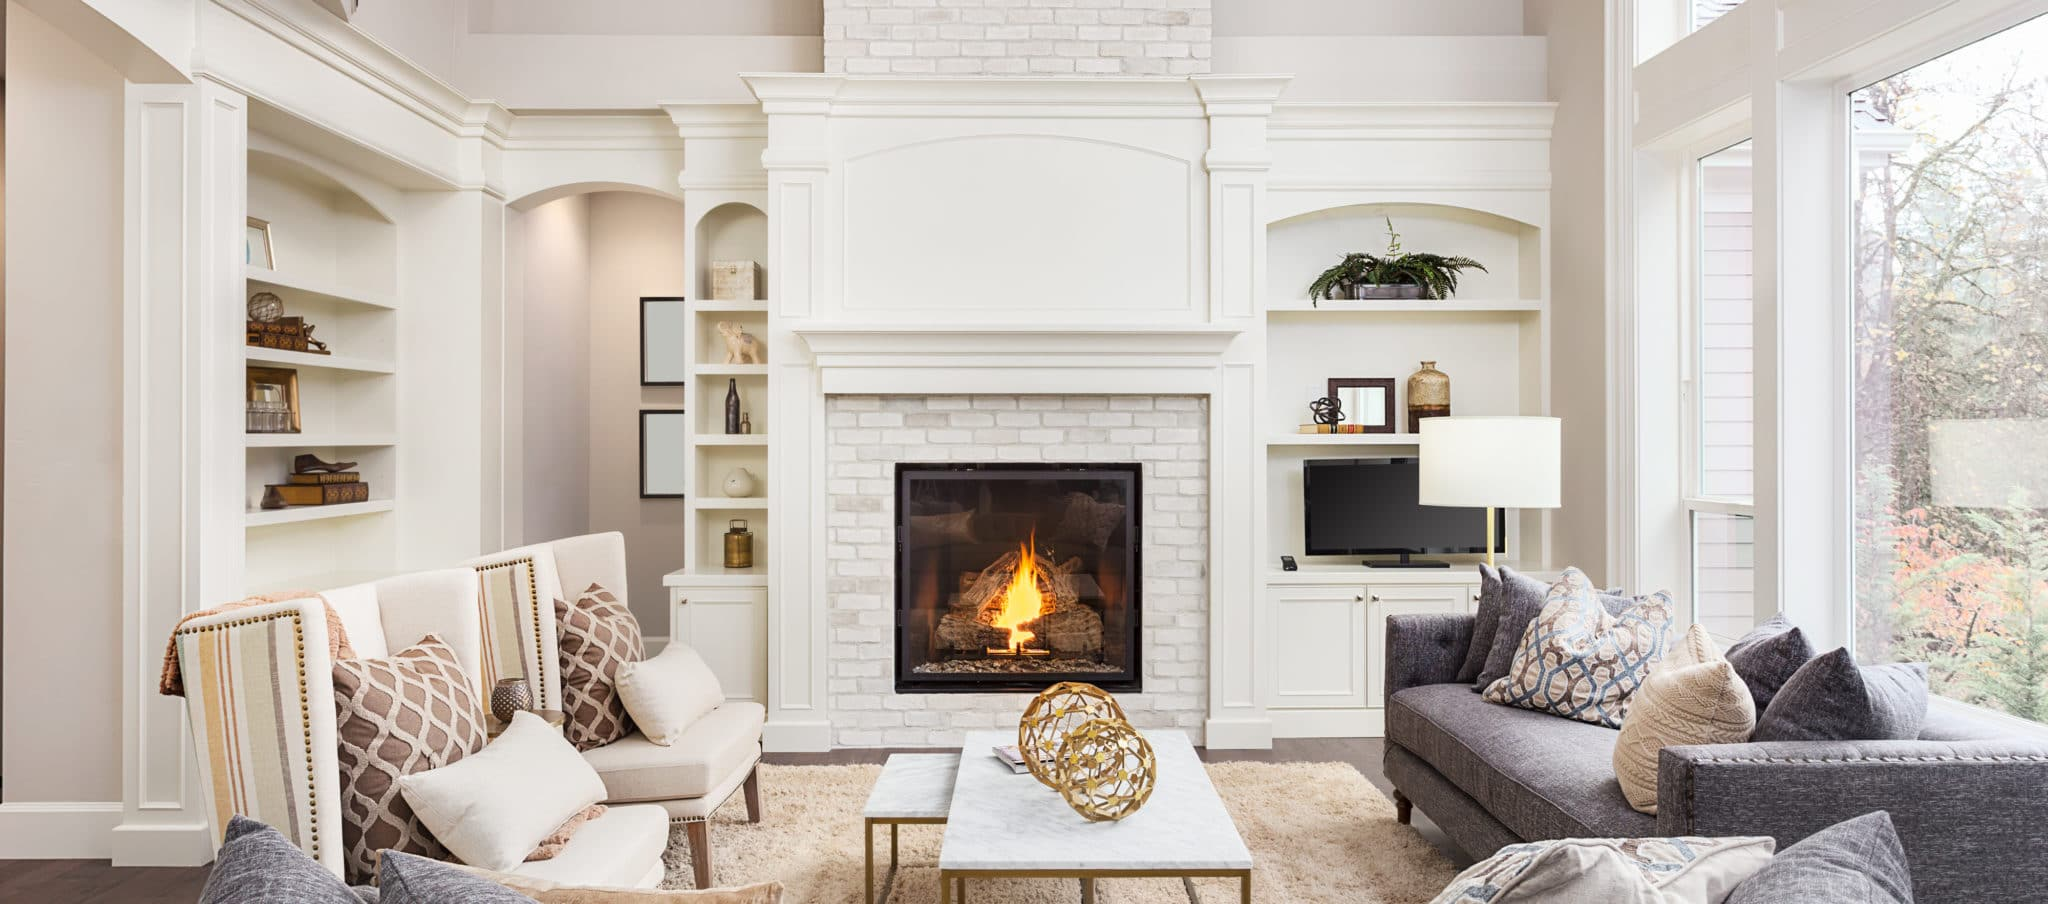 Beautiful home staging in a living room of a luxury home